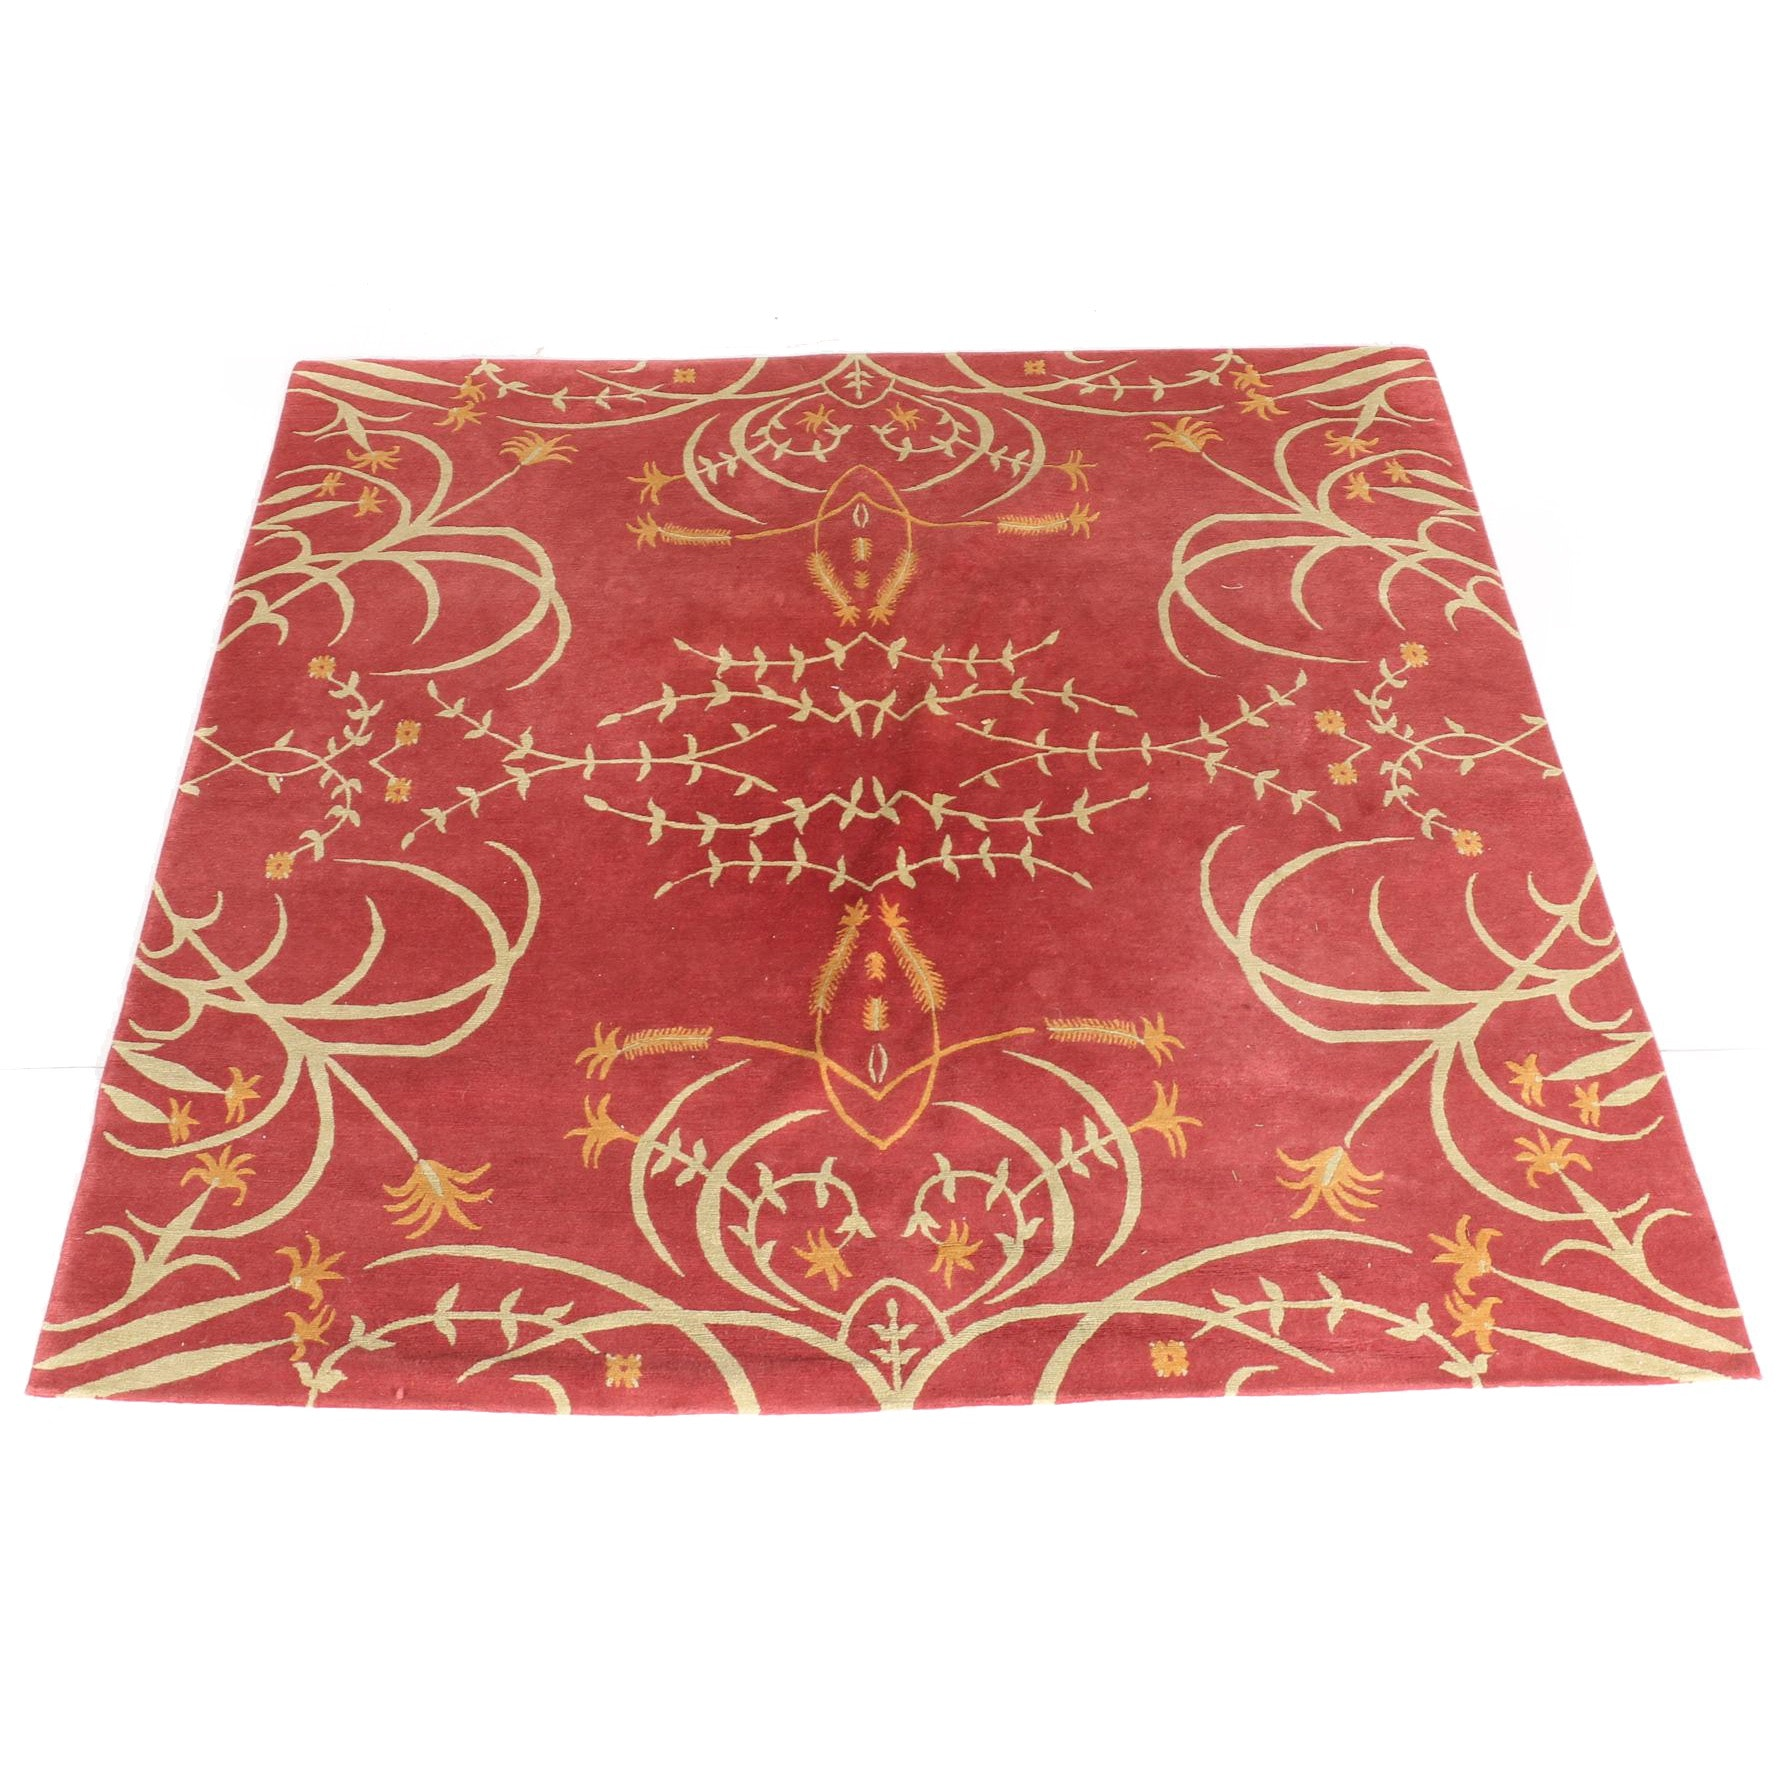 Hand-Knotted Floral Wool Area Rug